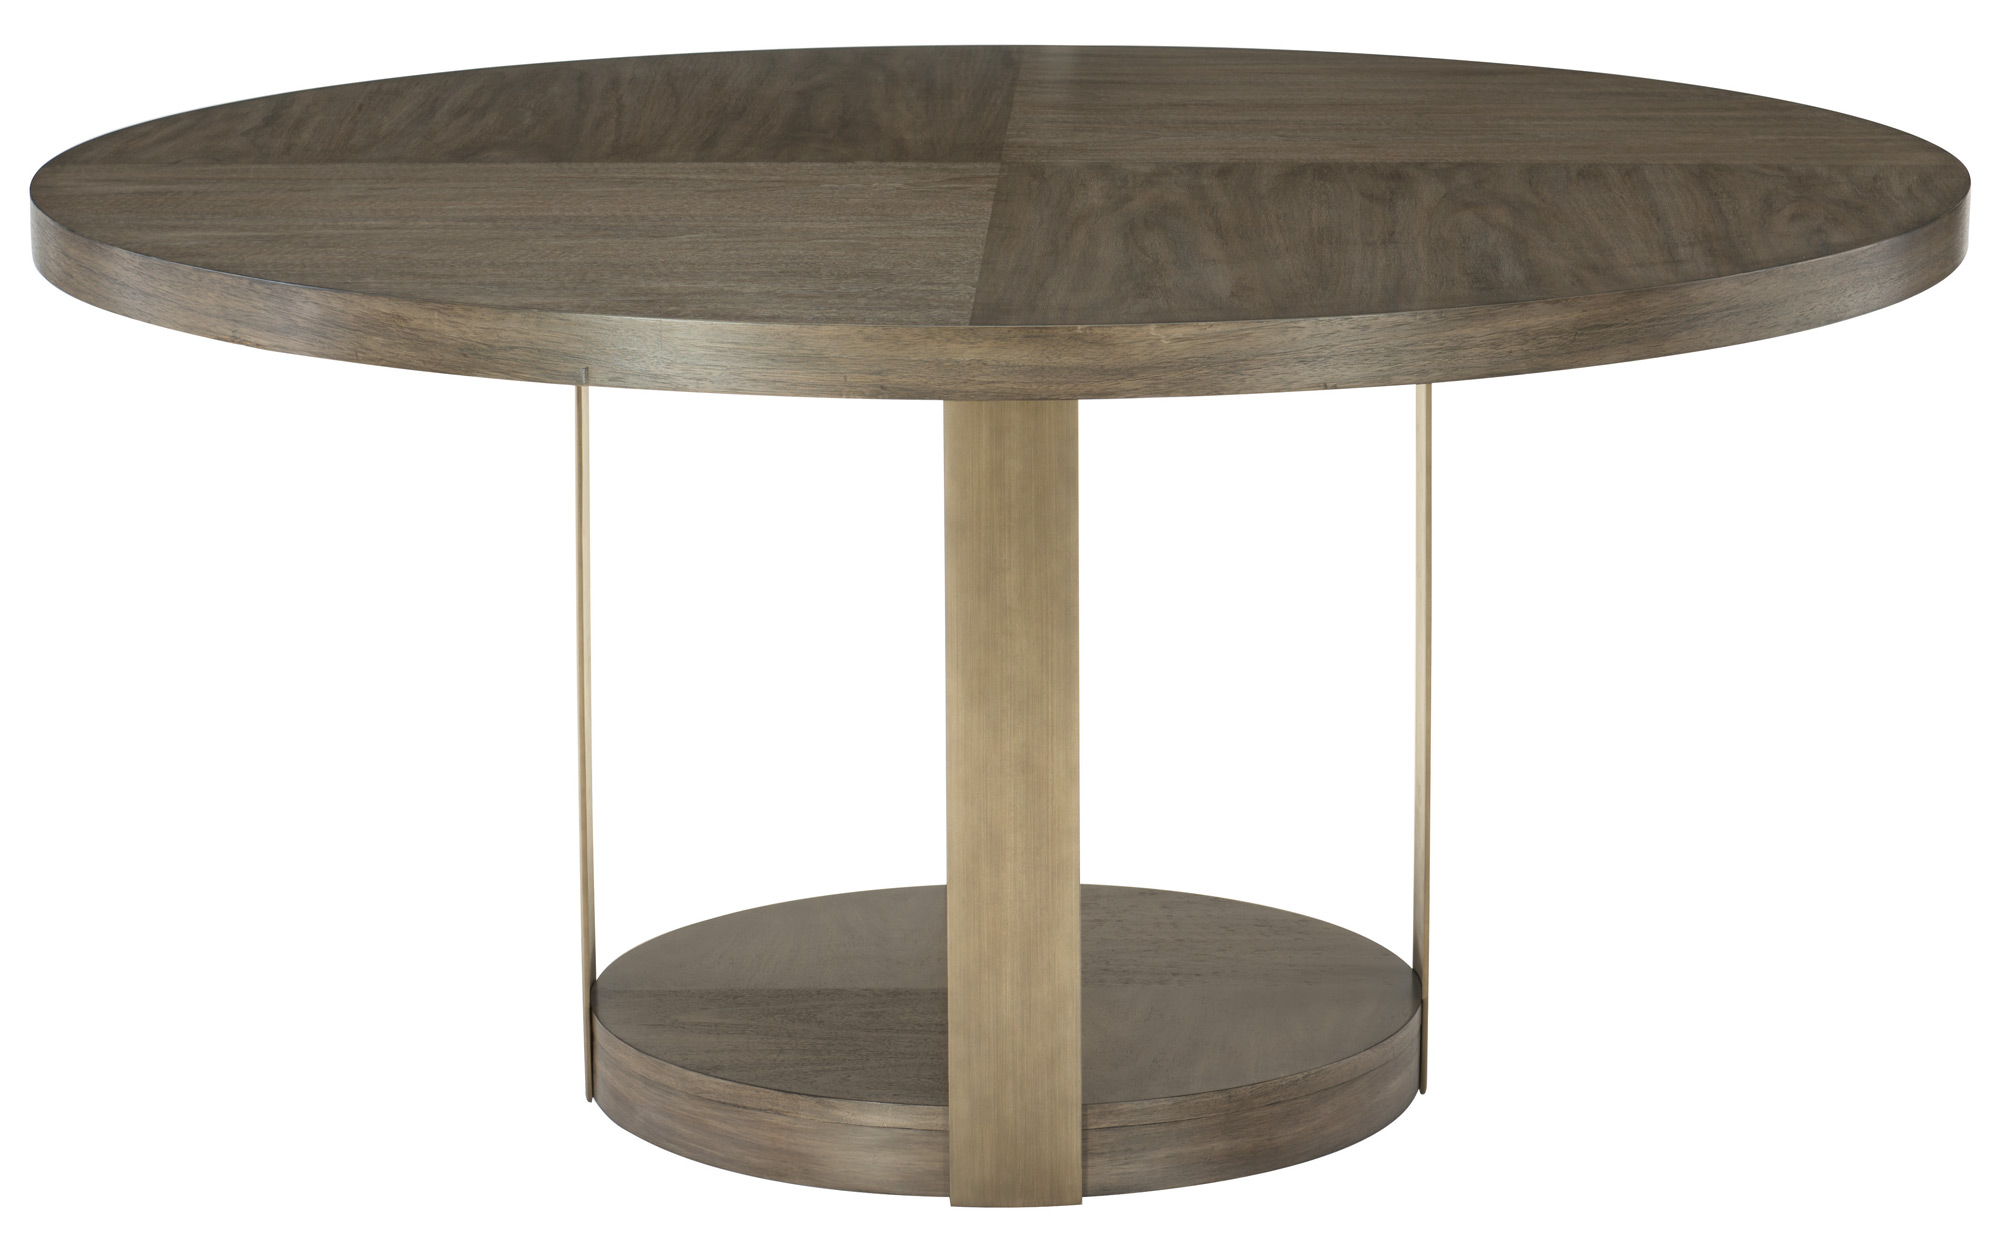 Tables Bernhardt - 72 round modern dining table